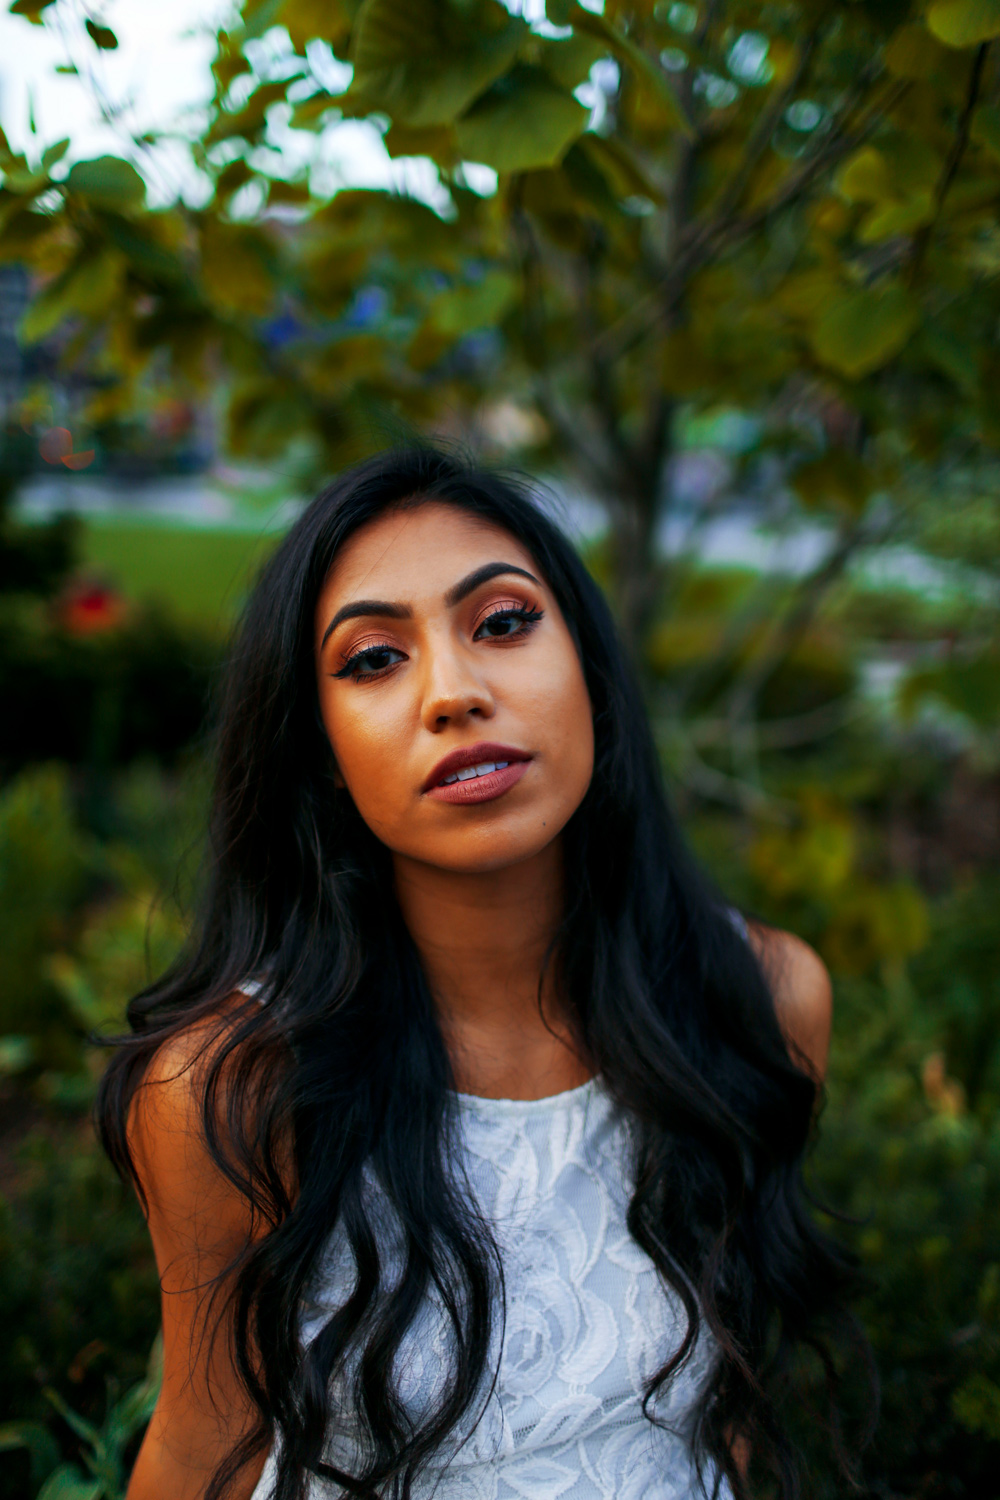 Model @arelivanessa. Image shot at f/1.4 to provide nice falloff in the background behind subject.